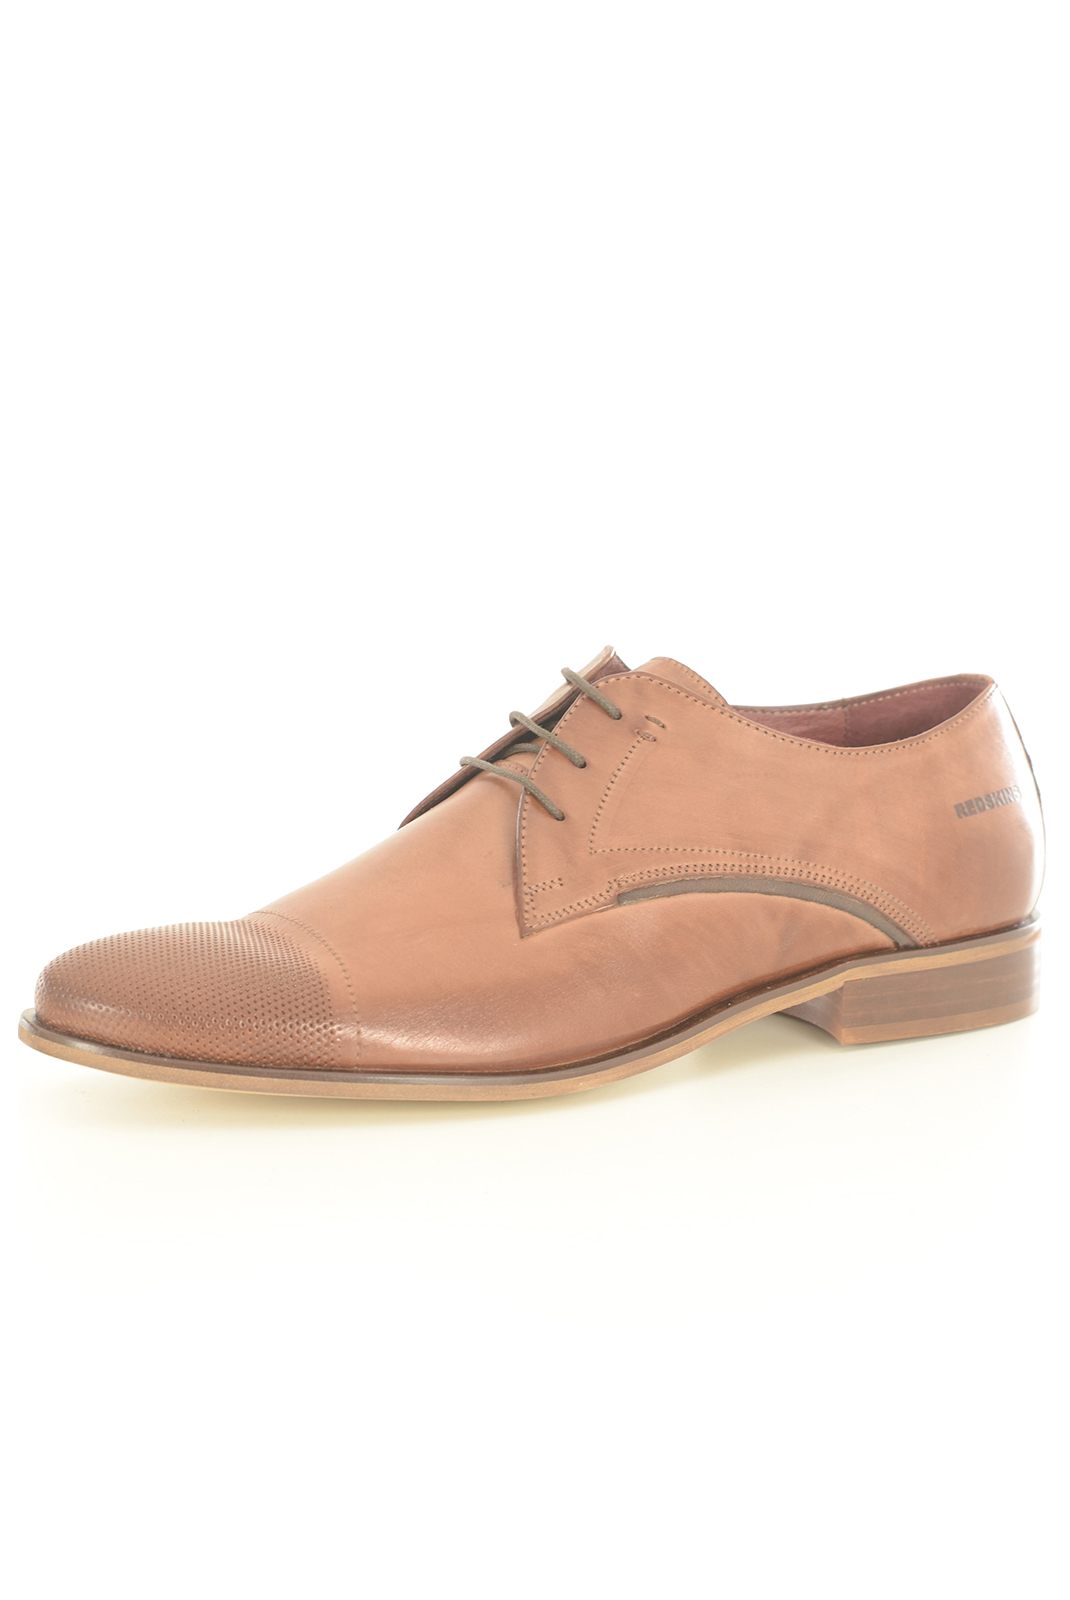 CHAUSSURES DE VILLE CUIR OSPINA REDSKINS MARRON